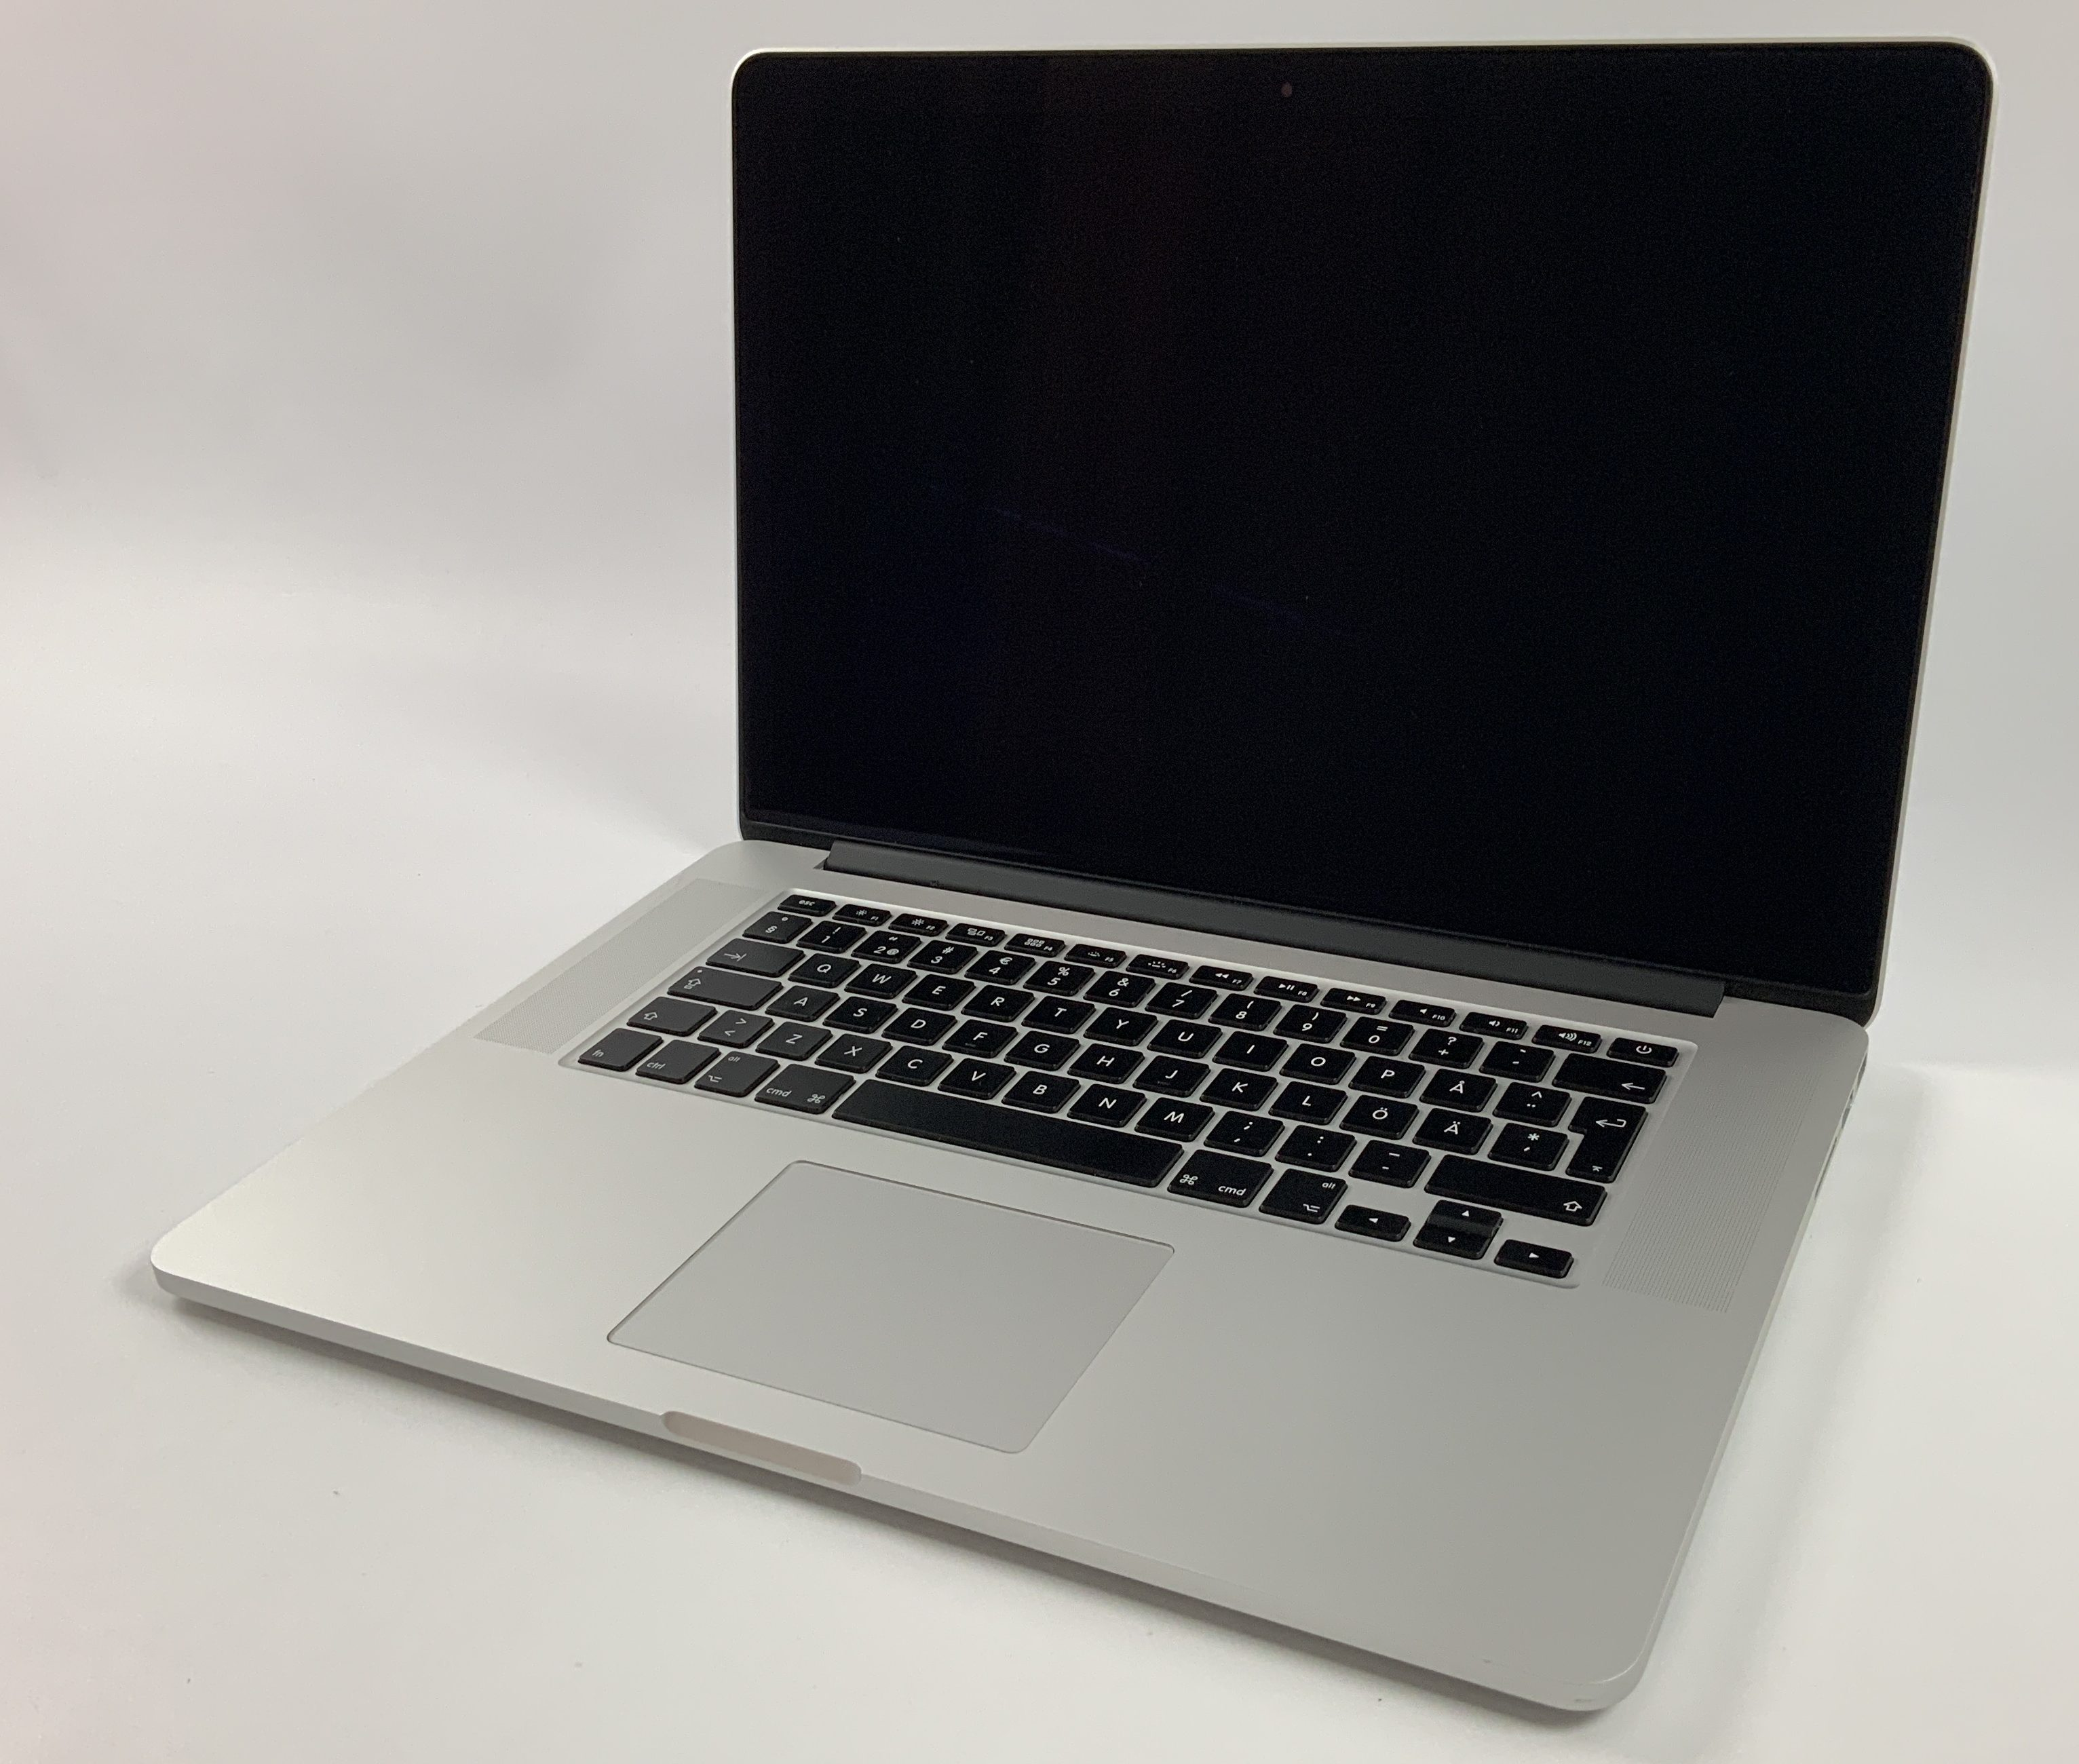 "MacBook Pro Retina 15"" Mid 2015 (Intel Quad-Core i7 2.2 GHz 16 GB RAM 1 TB SSD), Intel Quad-Core i7 2.2 GHz, 16 GB RAM, 1 TB SSD, Bild 1"